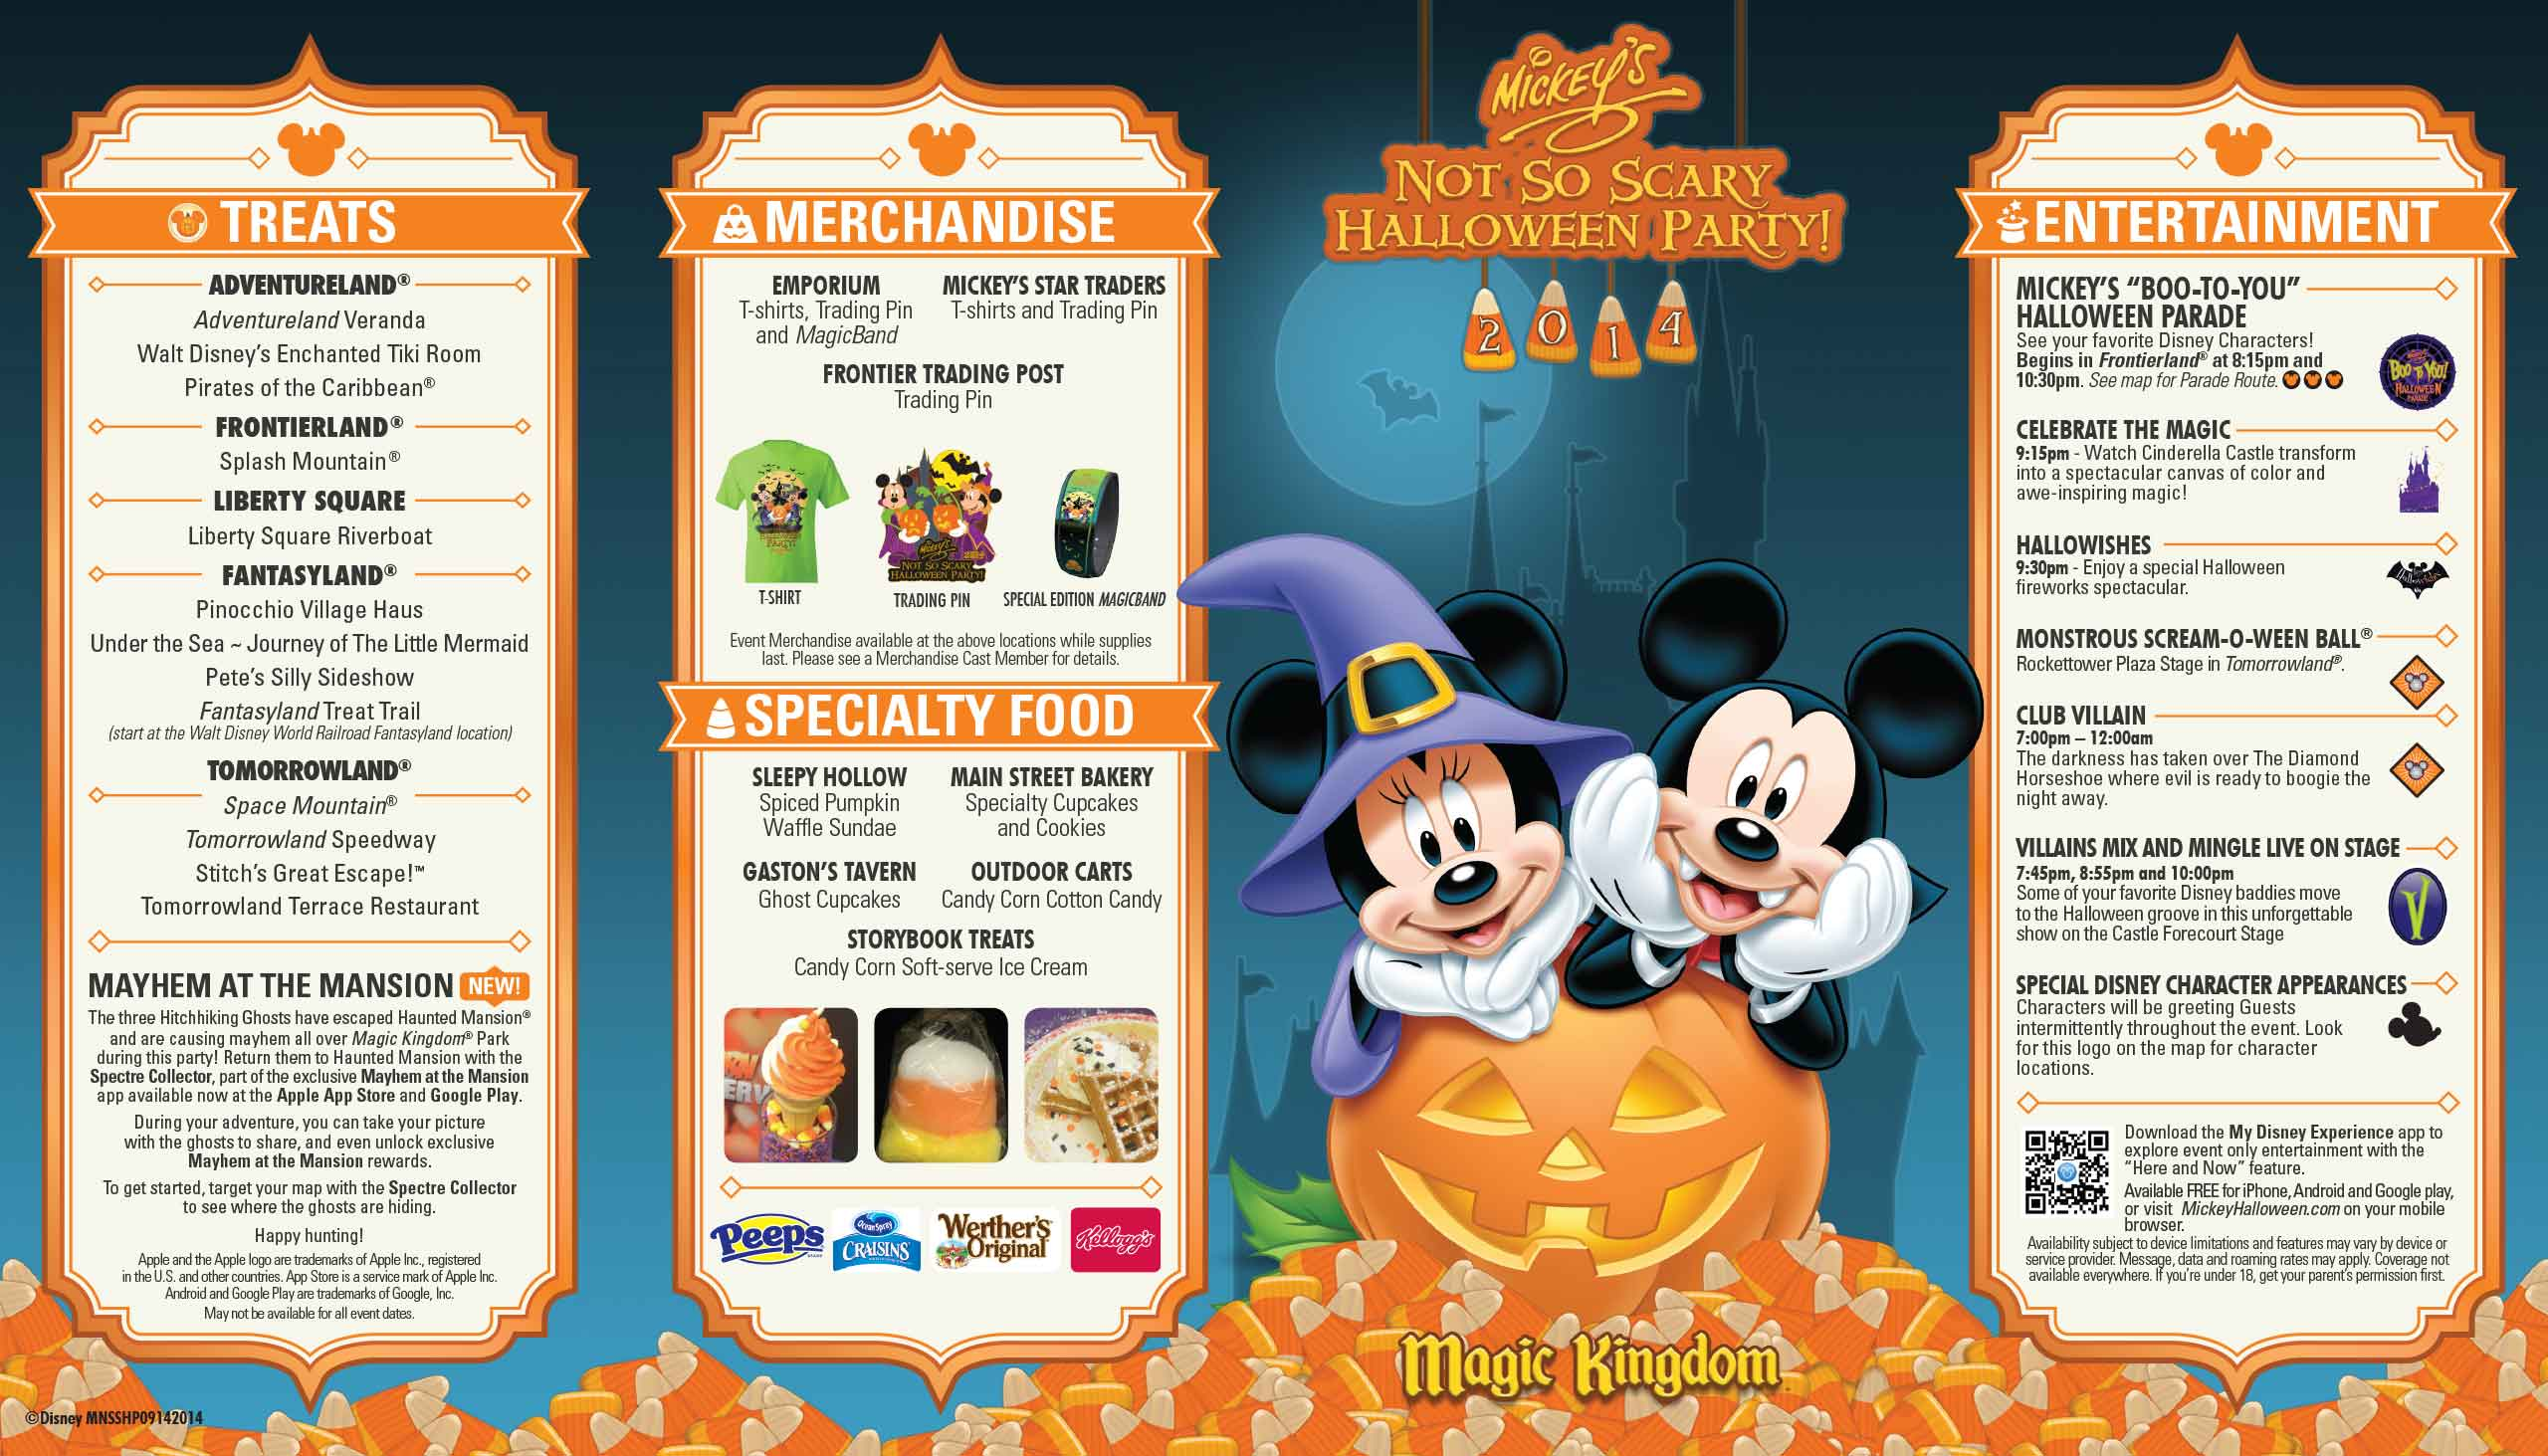 mickeys not so scary halloween party guide map 2014 photo 1 of 2 - Disneys Not So Scary Halloween Party